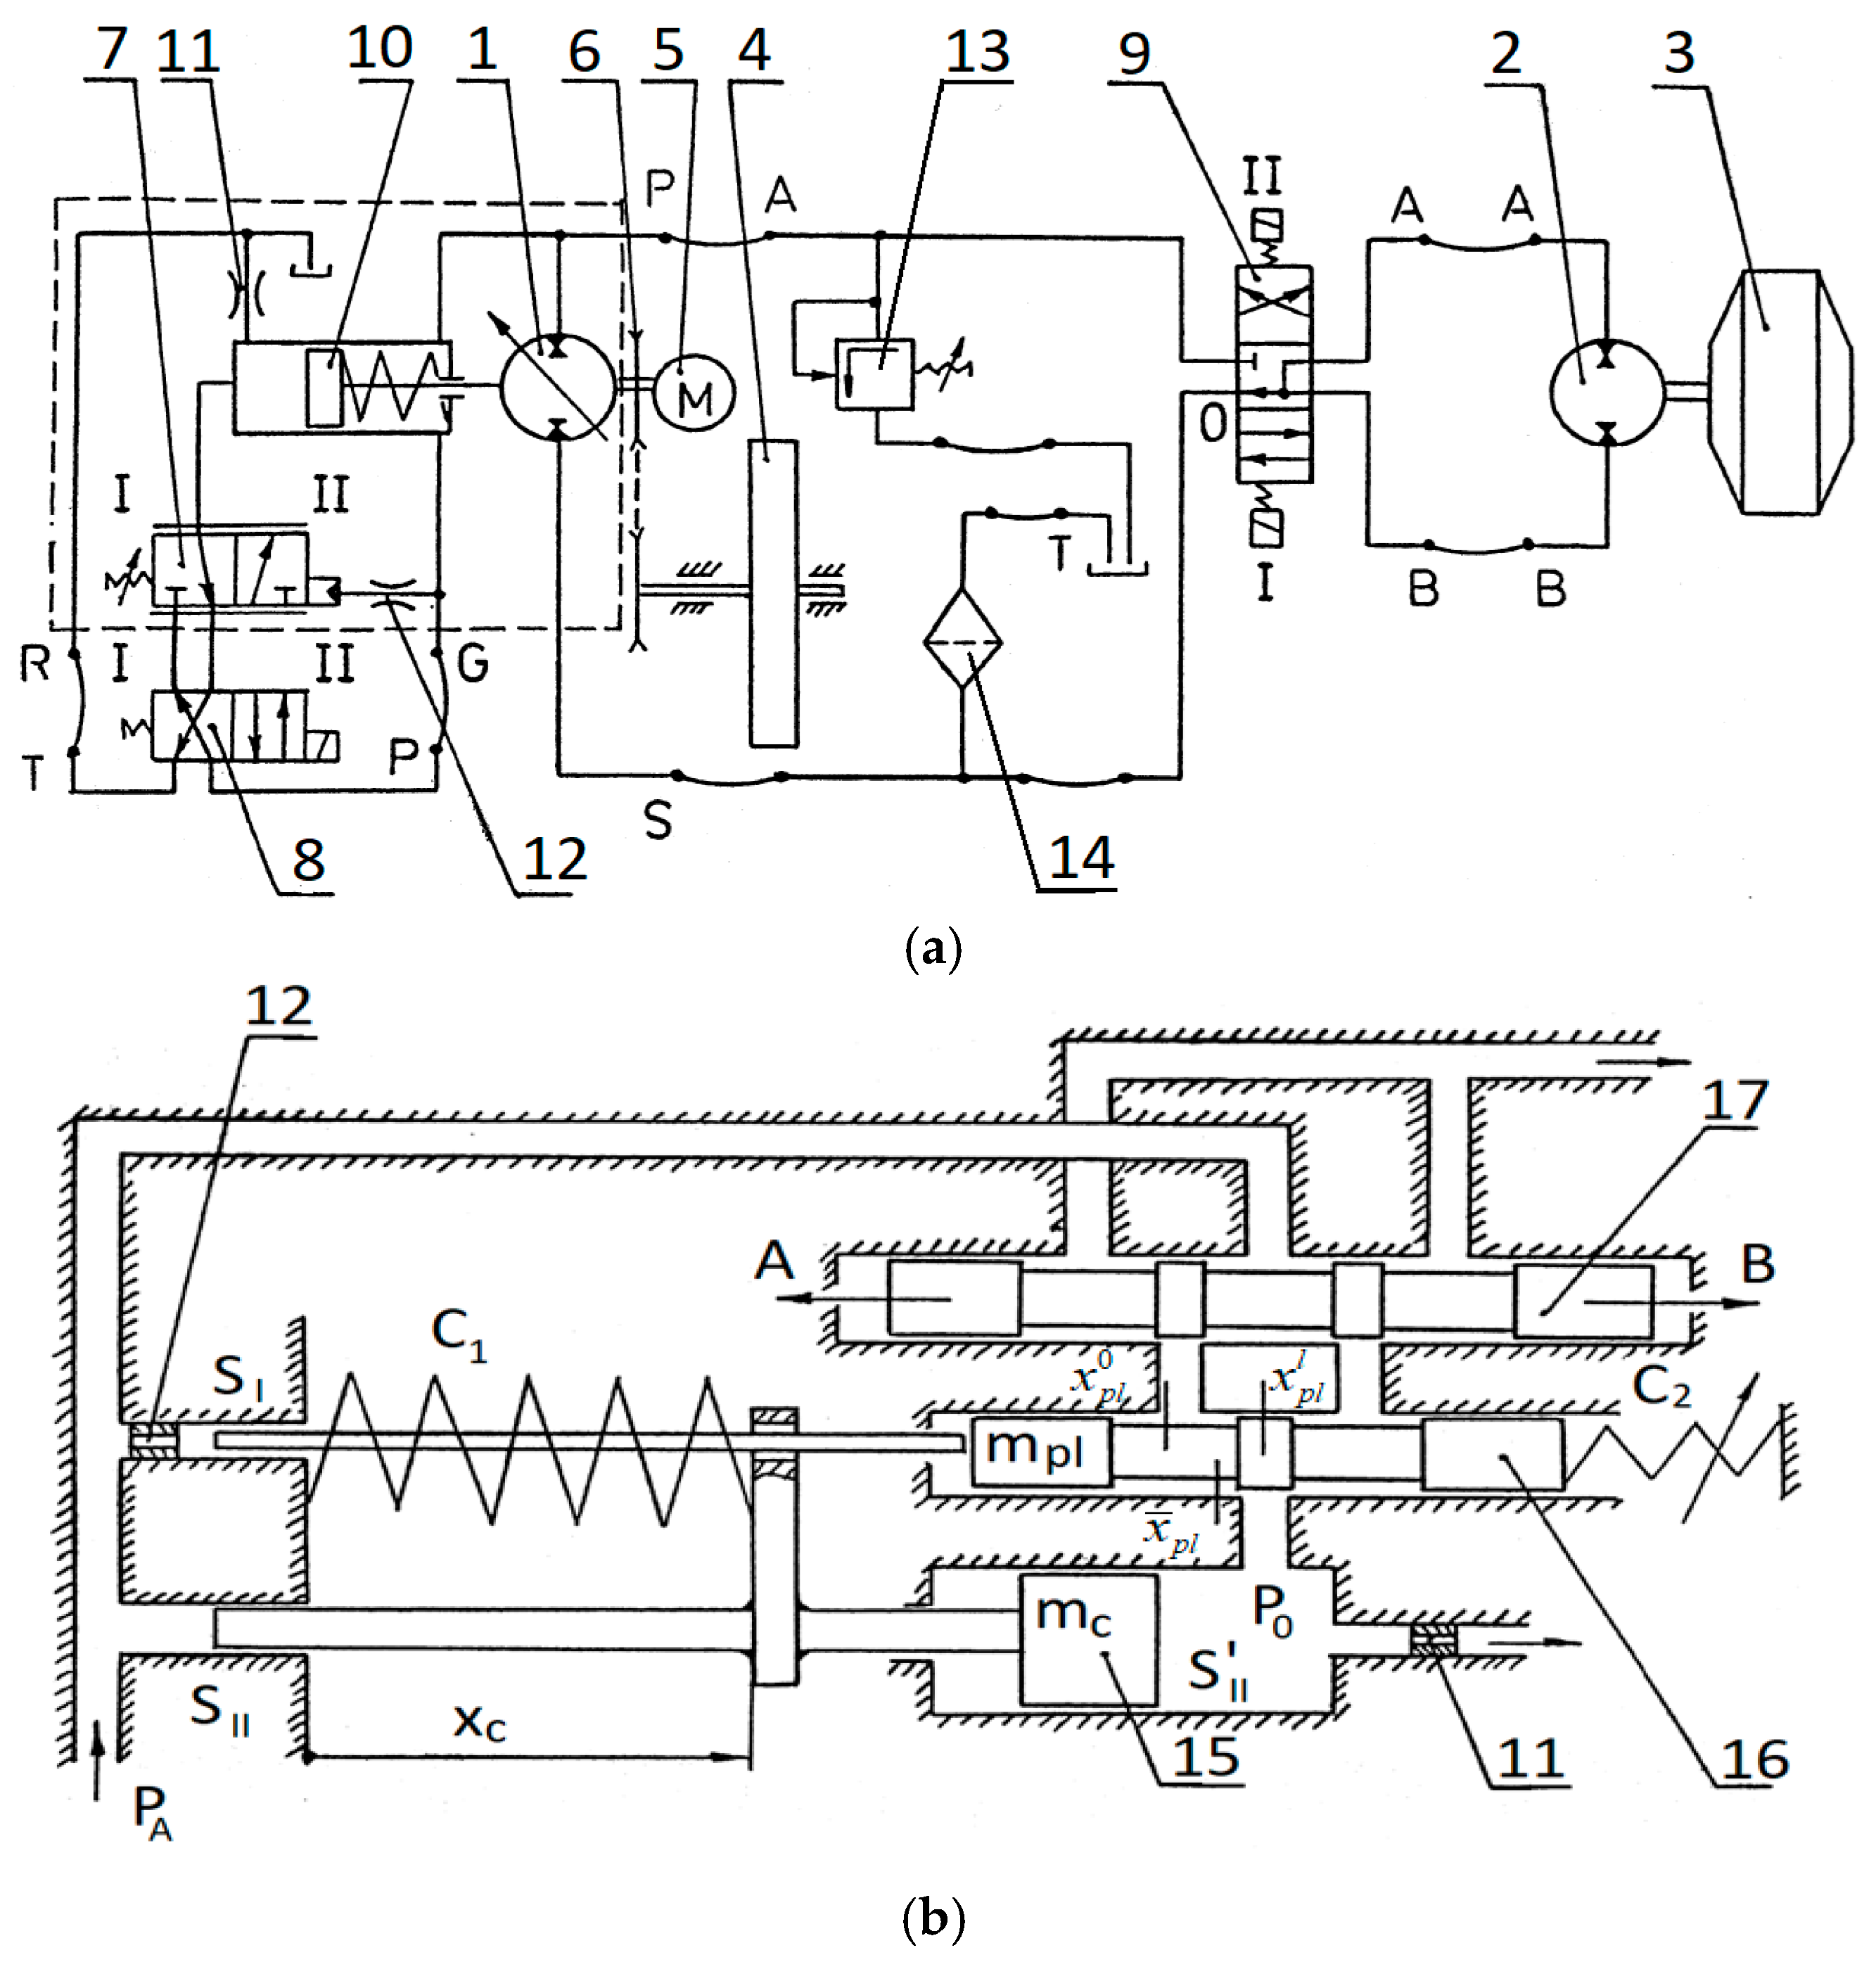 Wiring Diagram Electric Over Hydraulic Kes chevy ke light ... on electric trailer plugs, electric trailer brakes, electric trailer heater, electric running boards, electric trailer jacks, electric trailer controller, electric trailer furnace, electric privacy glass, electric trailer hitches,